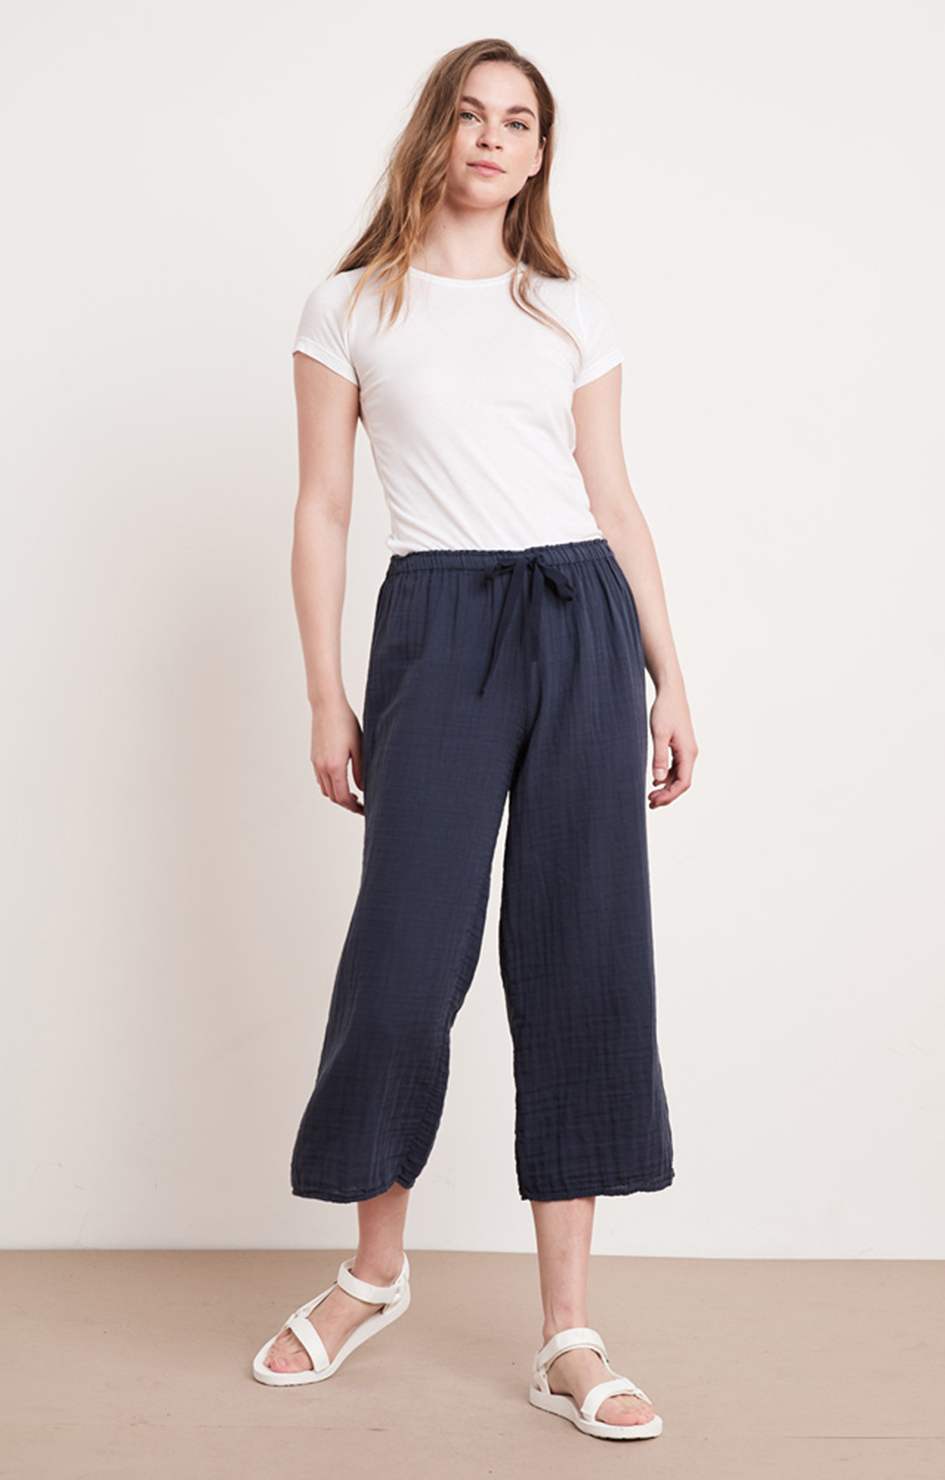 Nyleen Cotton Pant